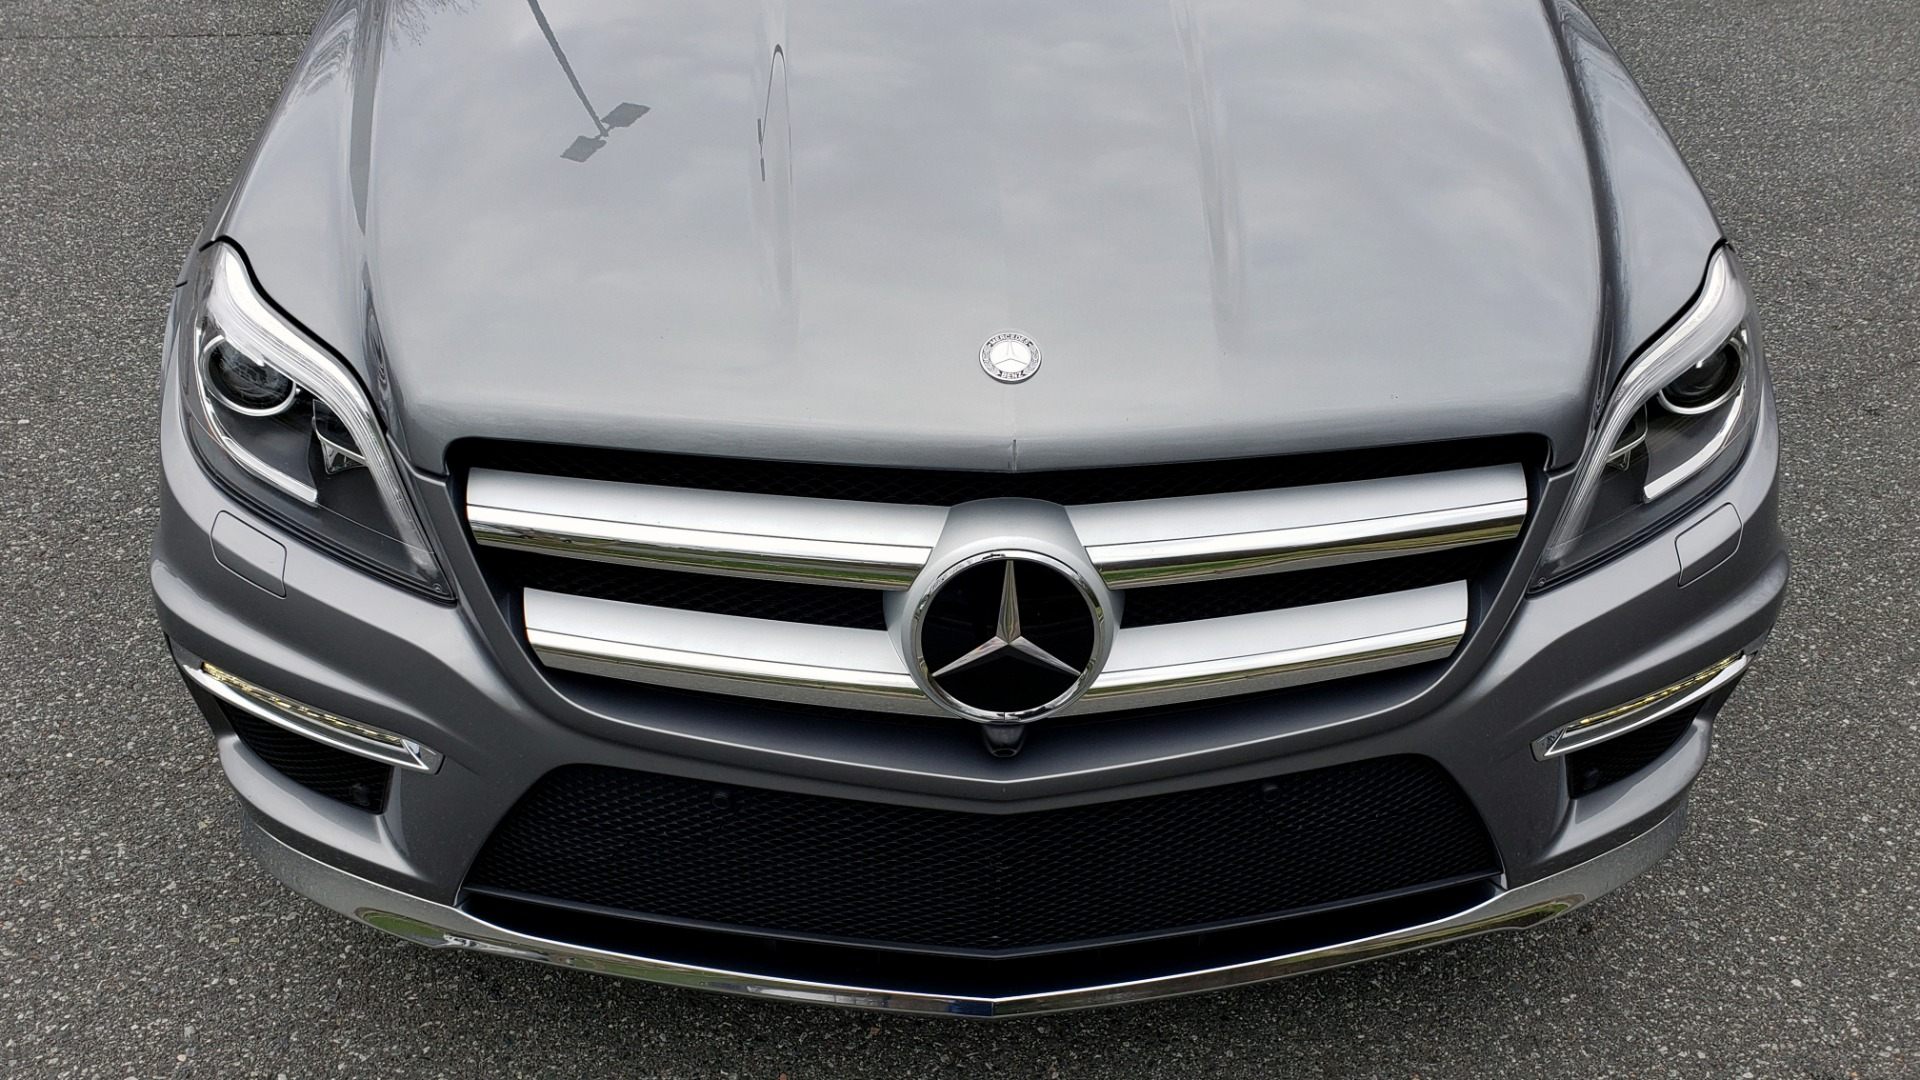 Used 2016 Mercedes-Benz GL 550 4MATIC / NAV / DRVR ASST / DUAL-ROOF / REARVIEW for sale Sold at Formula Imports in Charlotte NC 28227 14